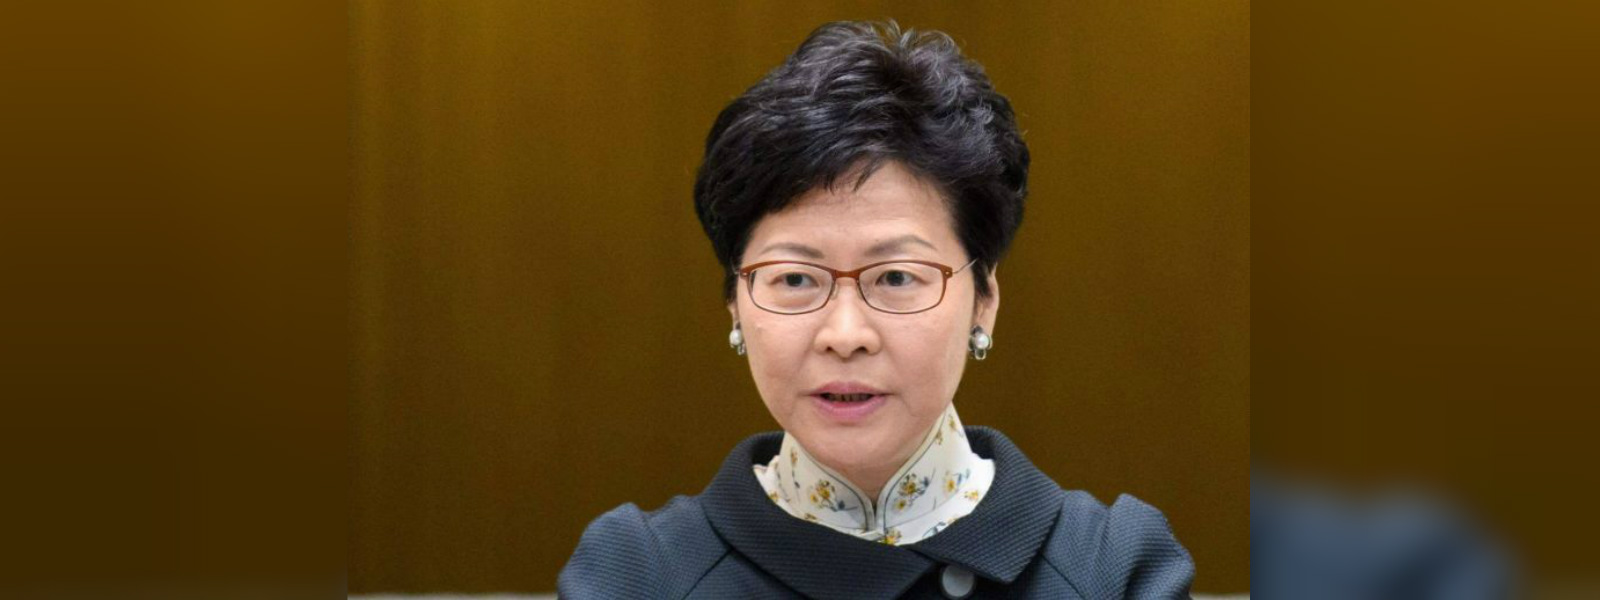 Hong Kong government 'does not agree' with Moody's rating – Leader Carrie Lam